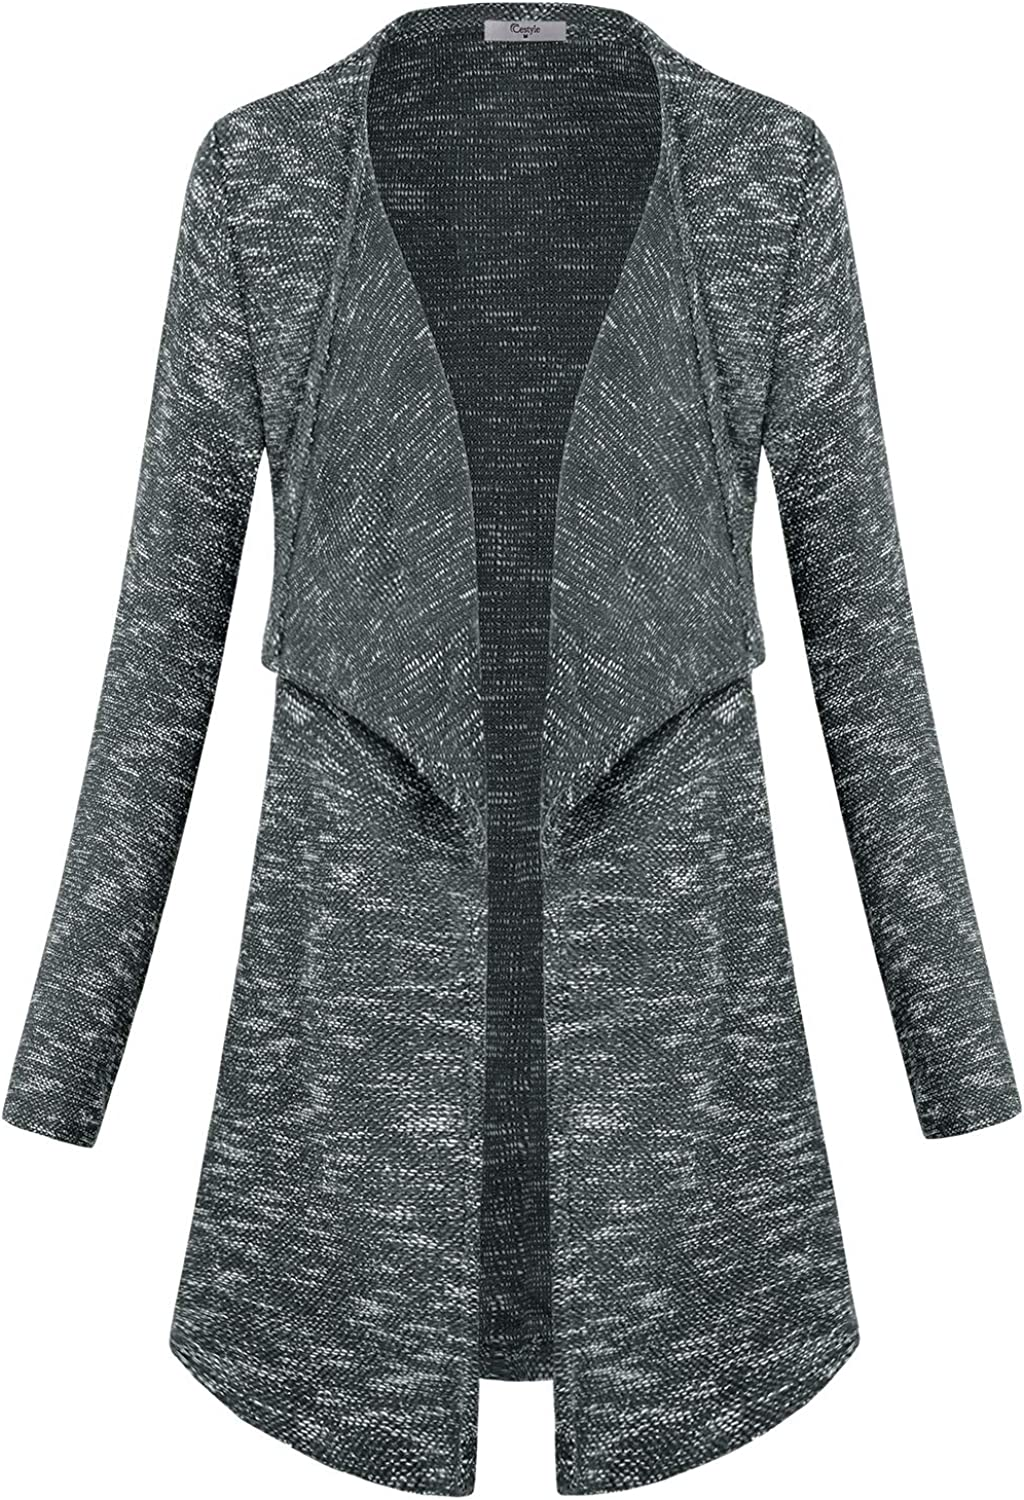 Cestyle Long Sleeve Coat Lapel Neck Open Front Waterfall Cardigan with Pockets